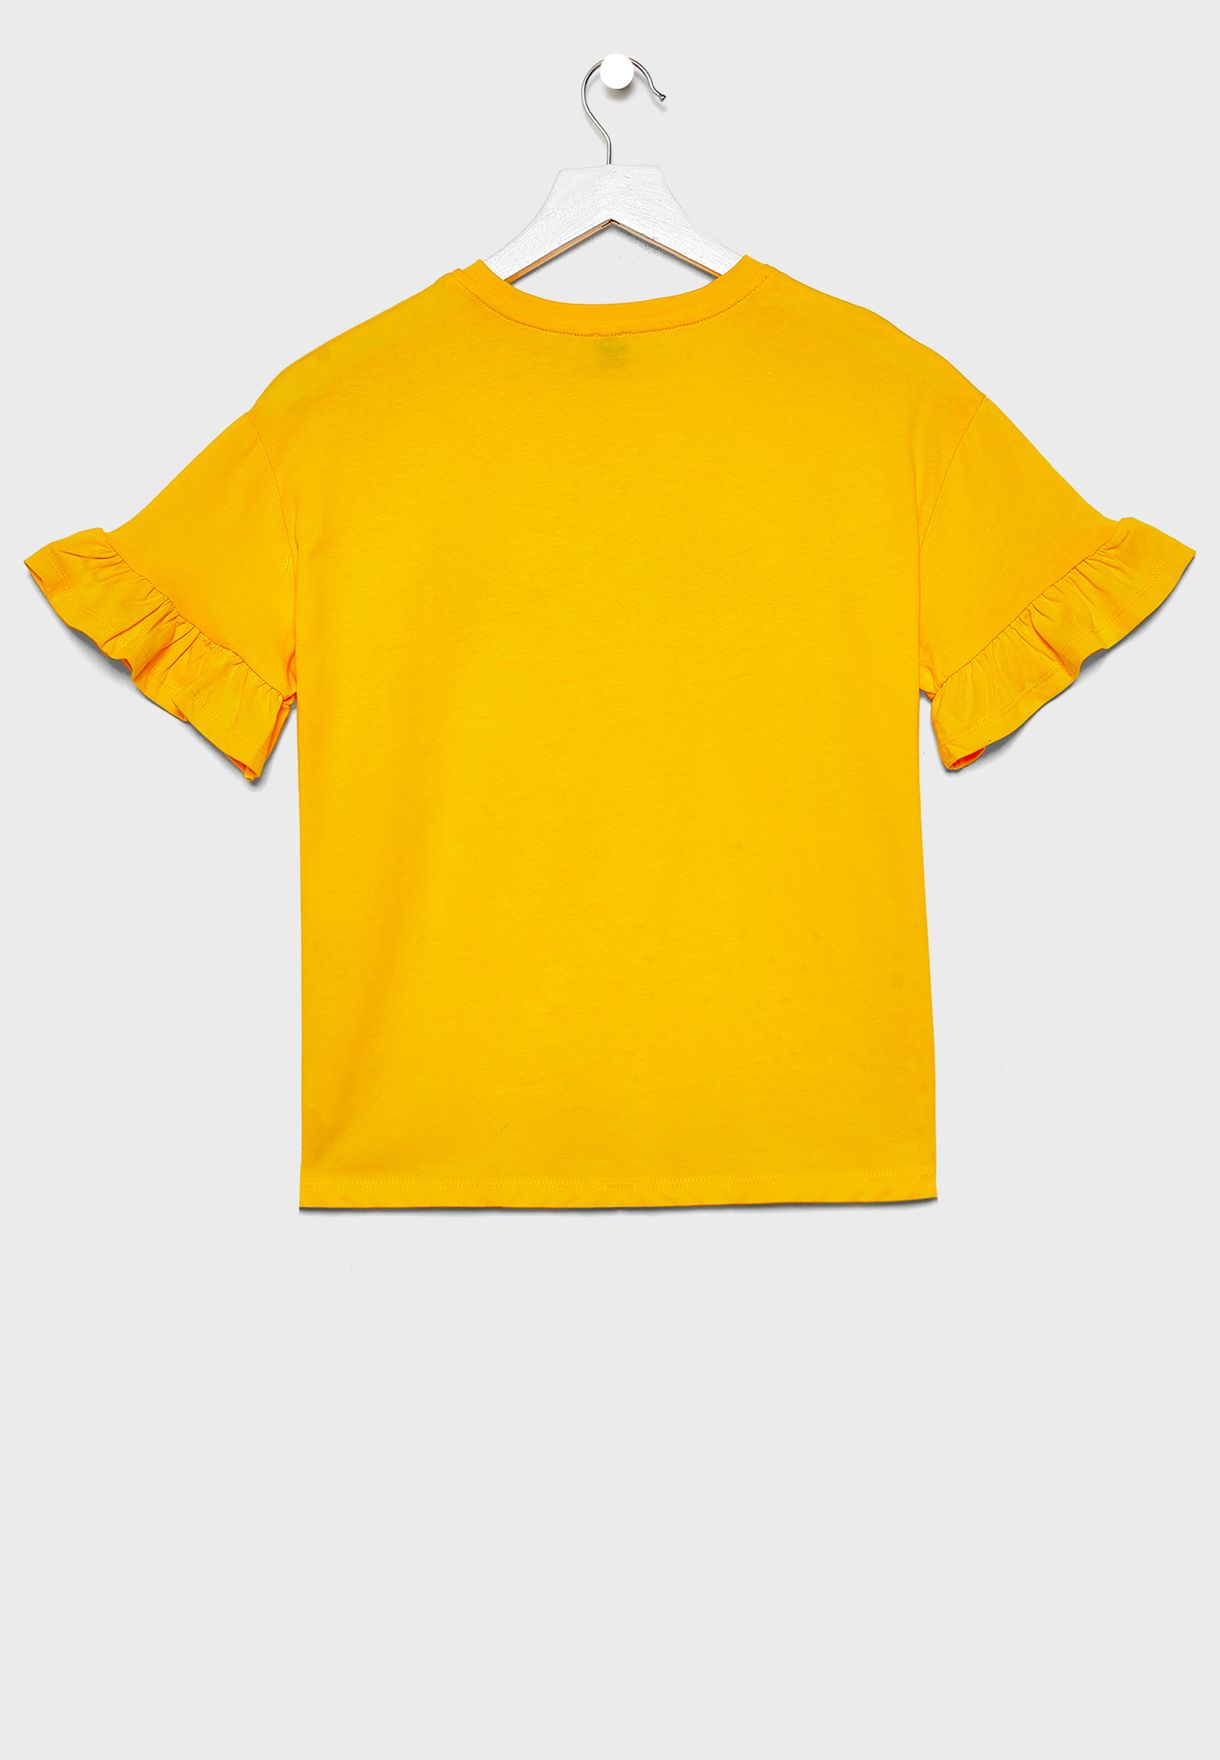 Kids Unique Embroidered Top